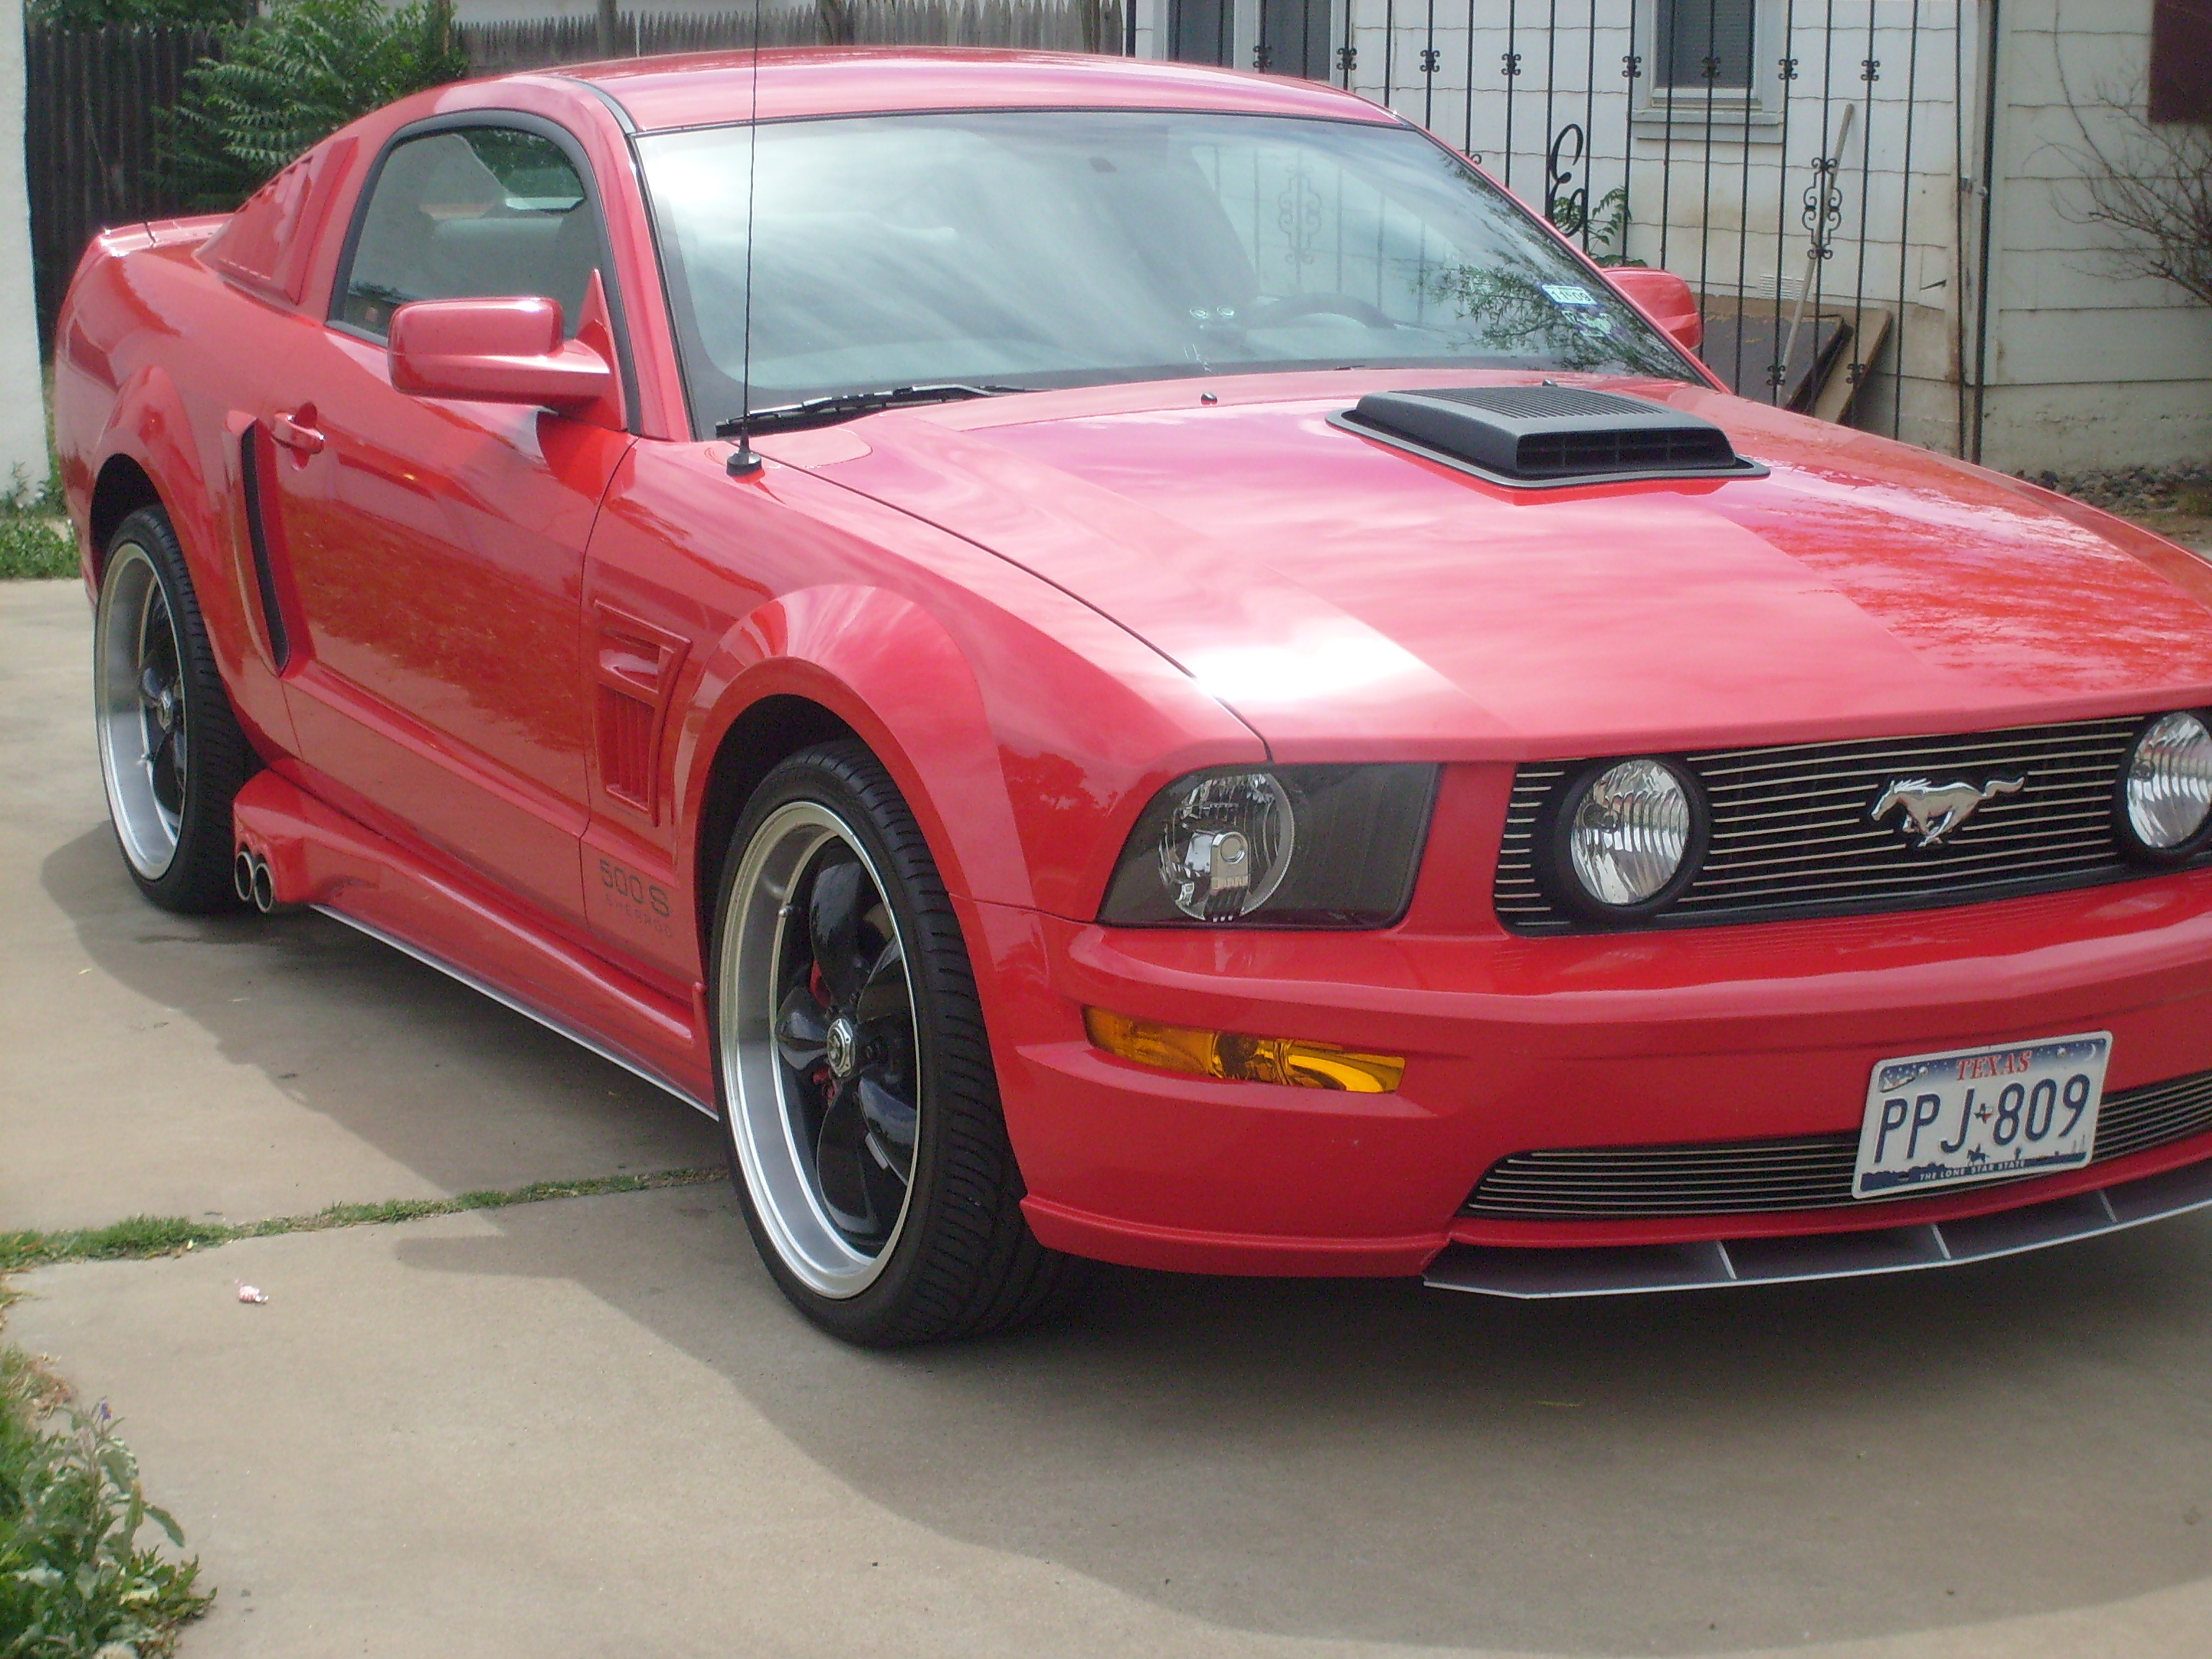 rodthestud 2008 Ford Mustang 12426580